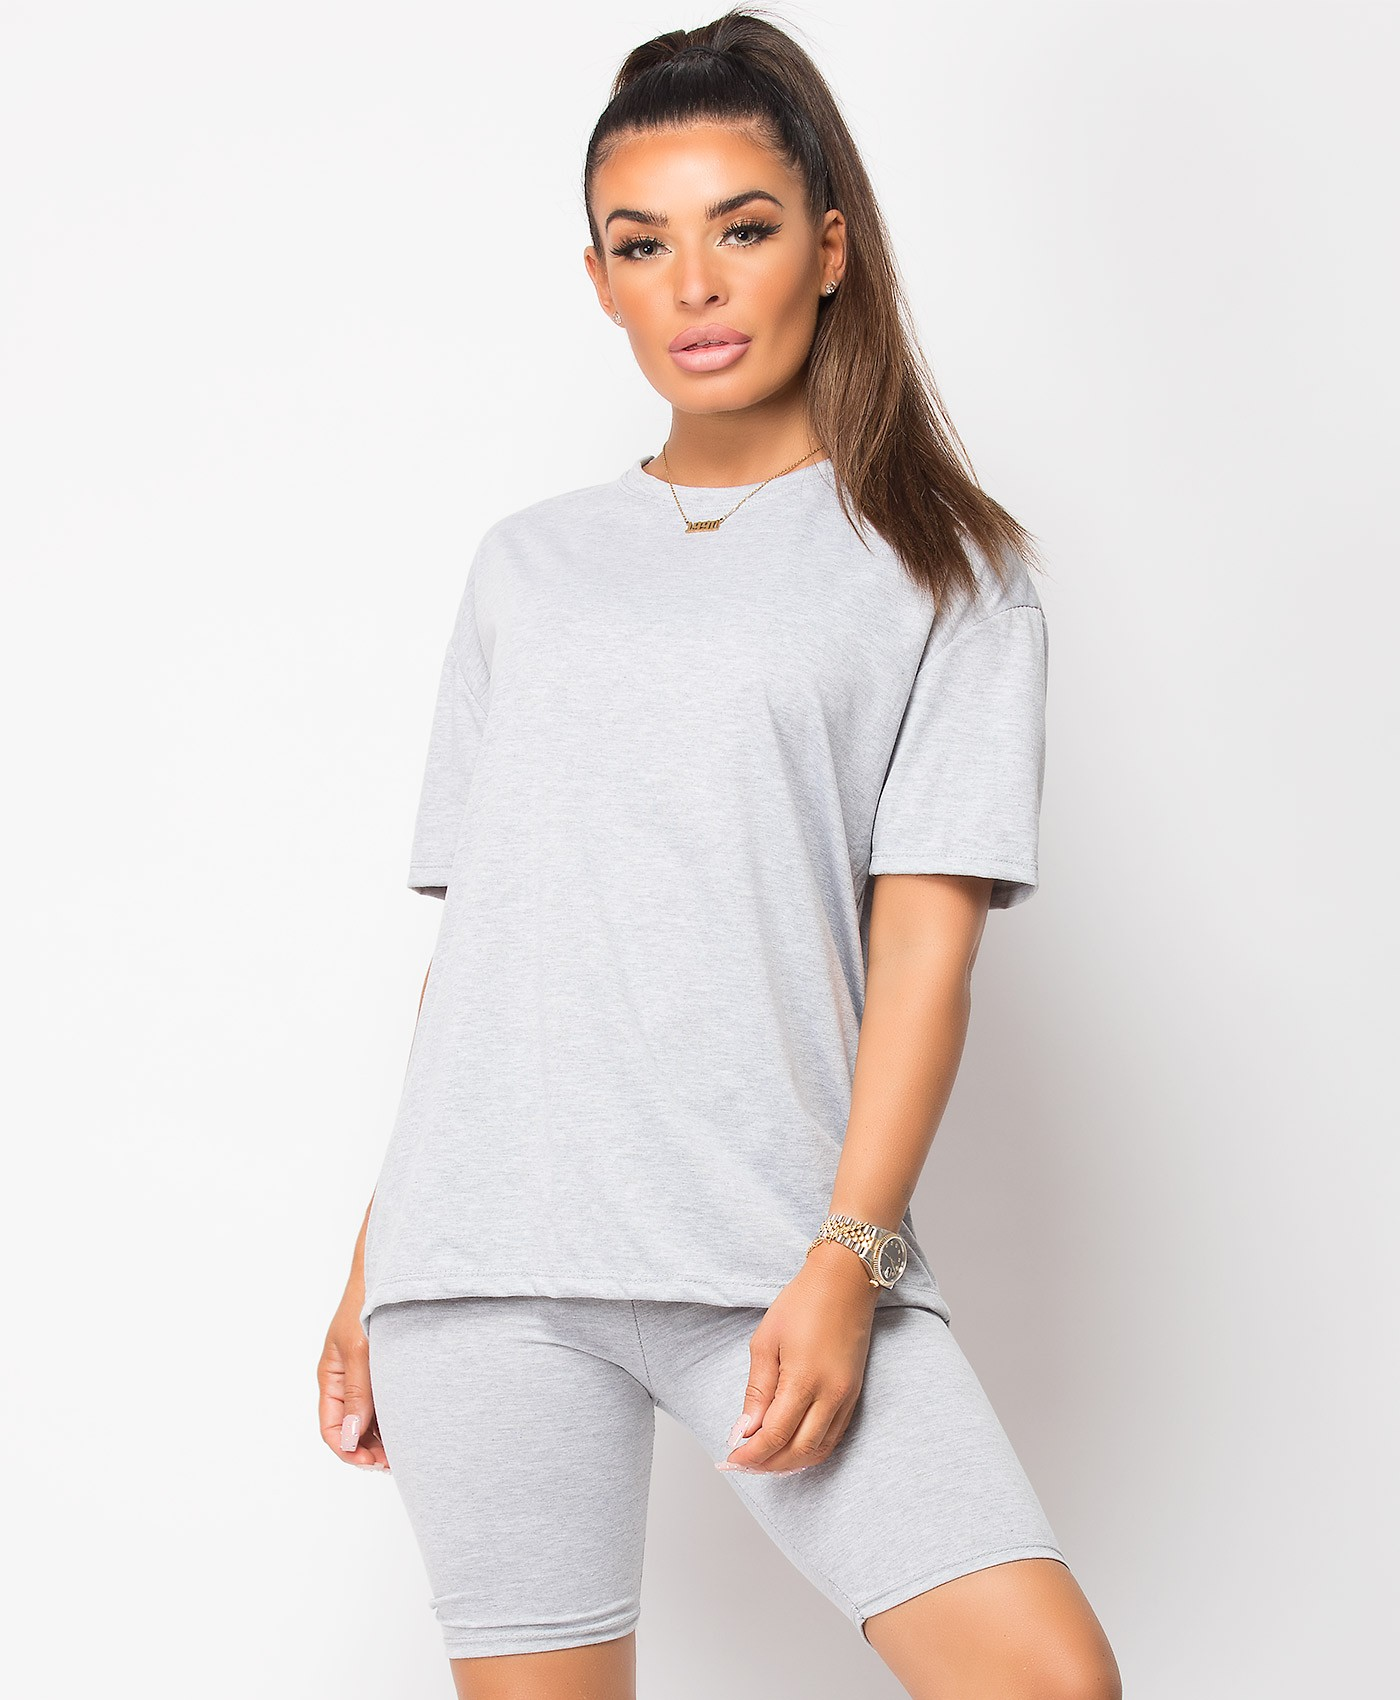 Grey Plain Cycling Short & T-Shirt Co Ord Loungewear Set